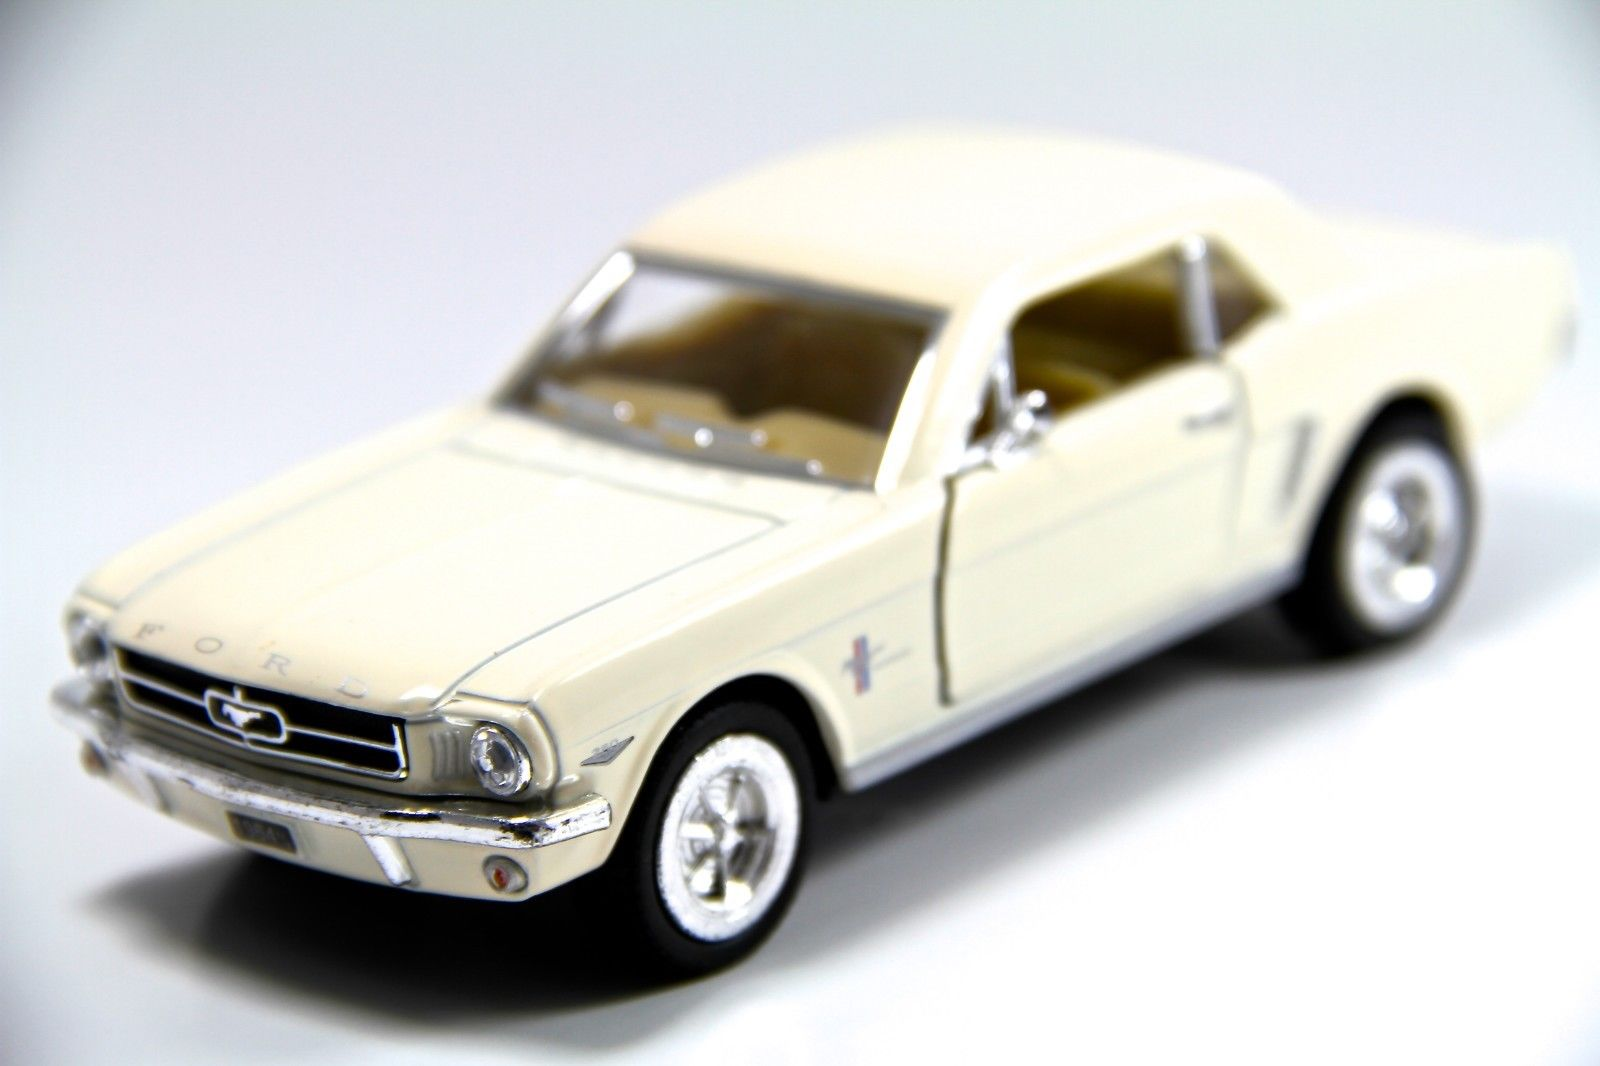 1:36 Modellauto 1964 Ford Mustang